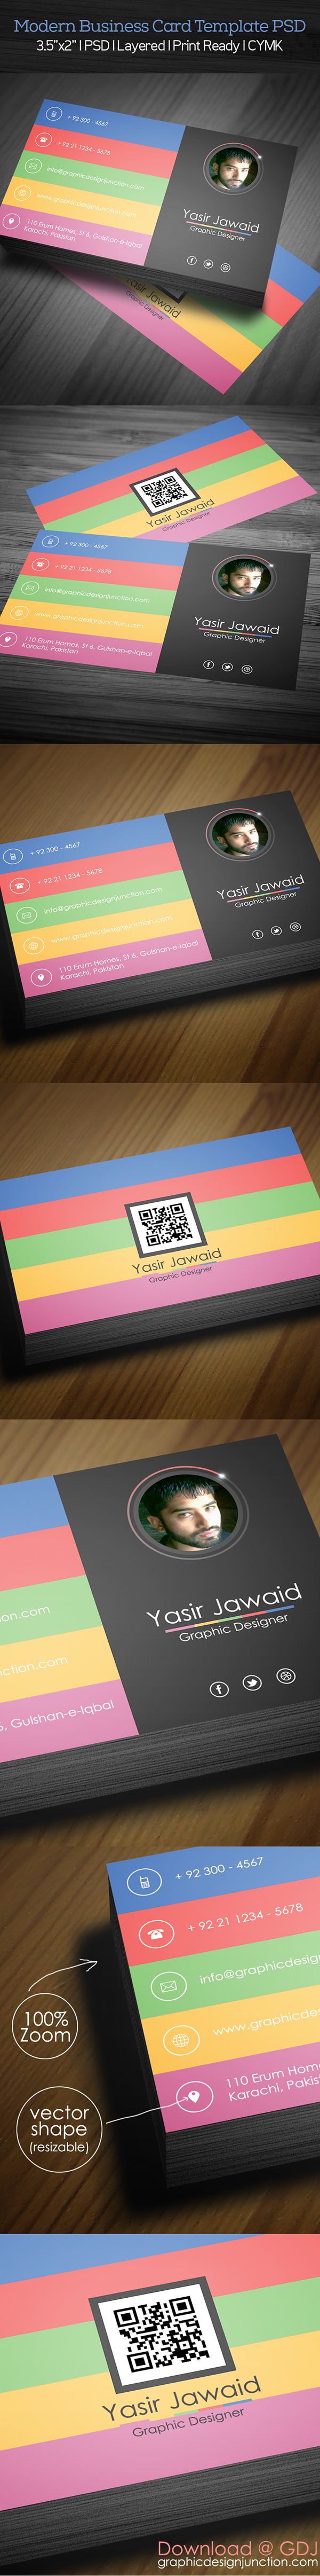 Modern Business Card Mockup PSD (Freebie)